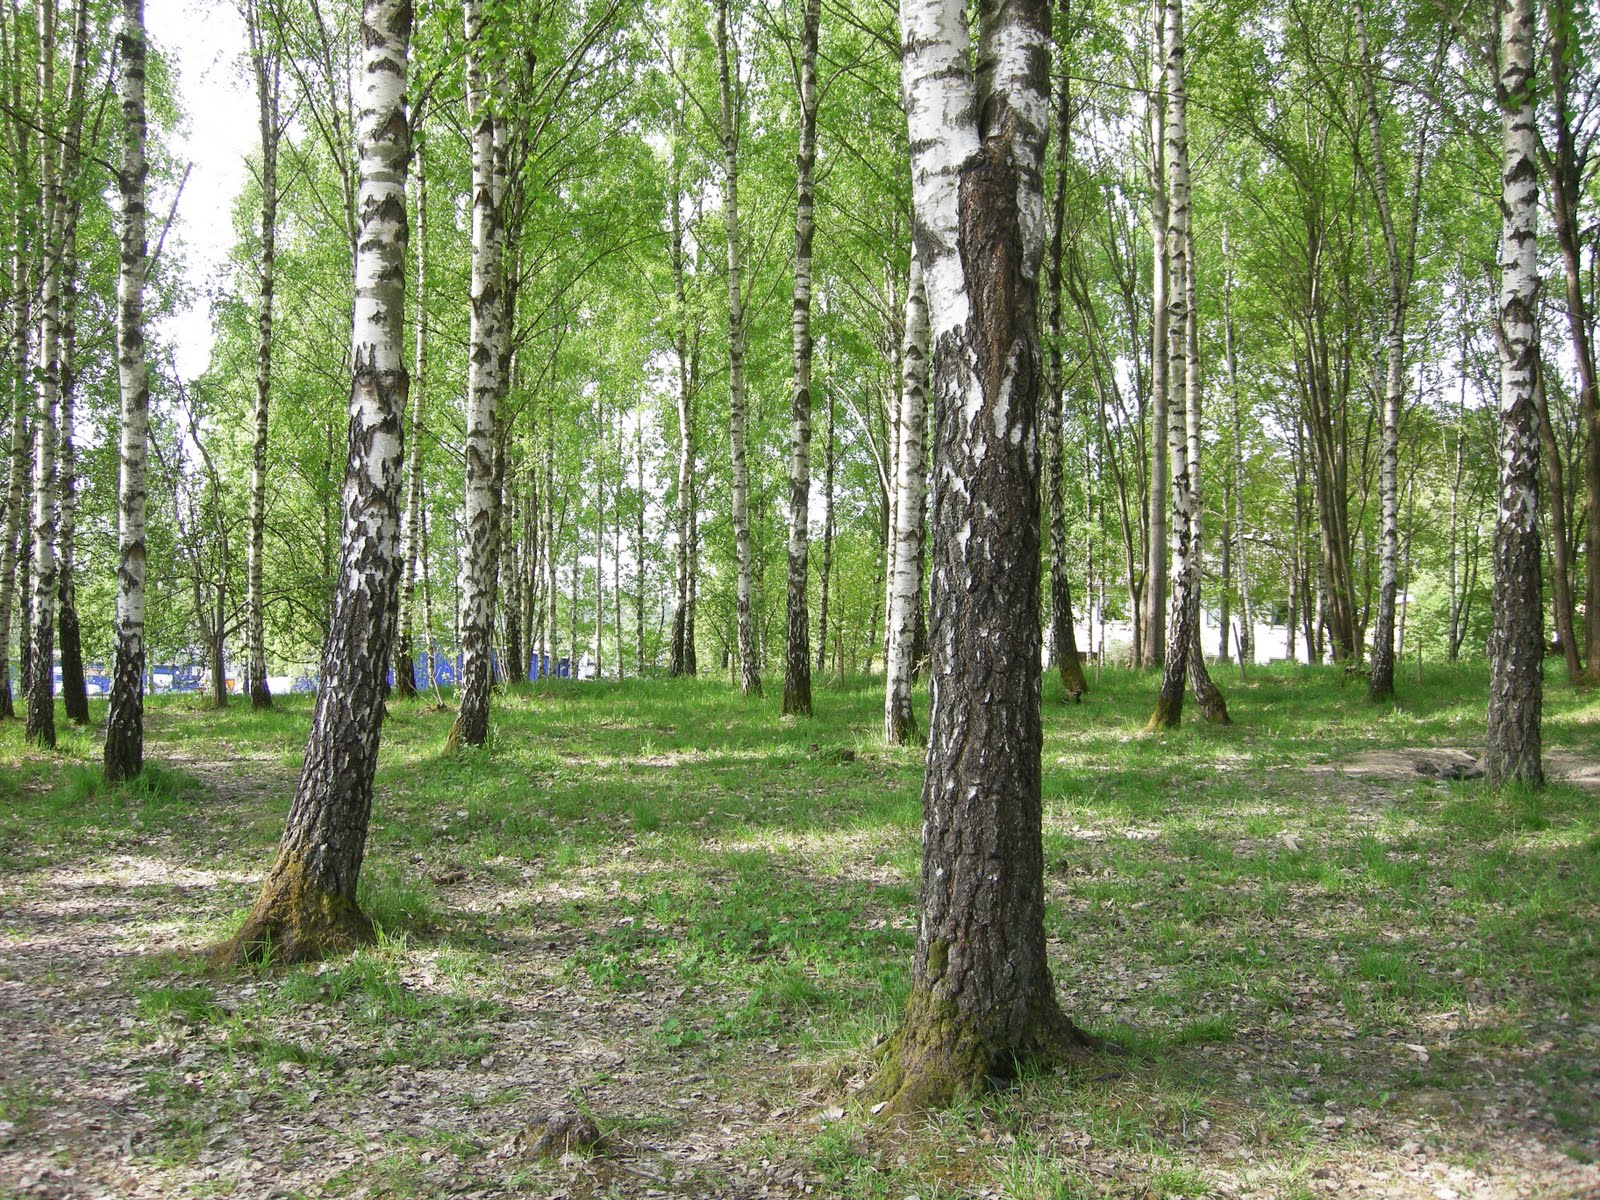 The birch forest [photo: sofia wendel]